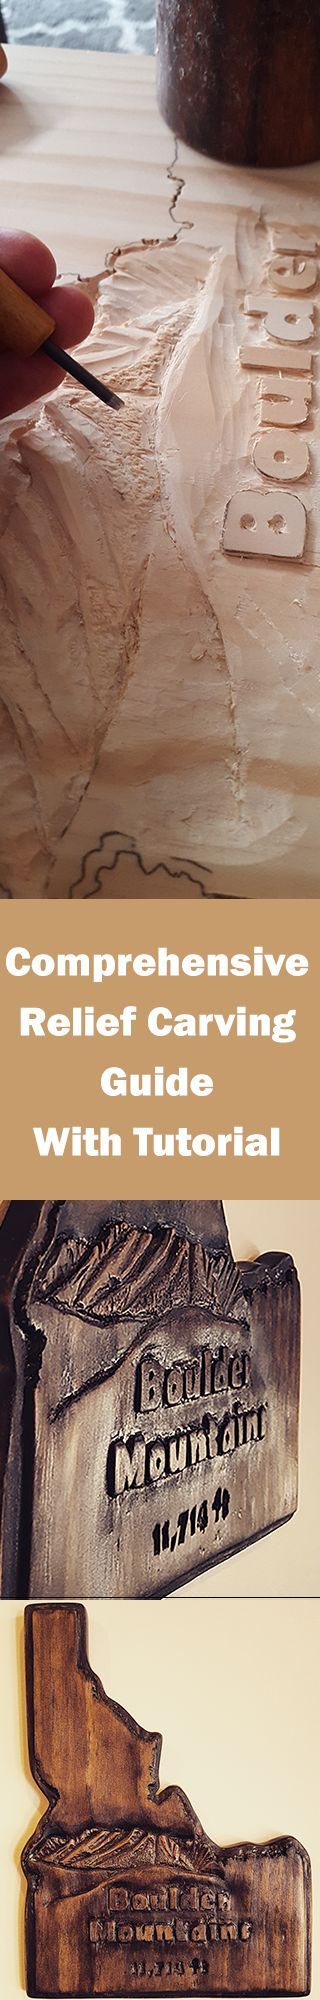 Best images about carving for beginners on pinterest